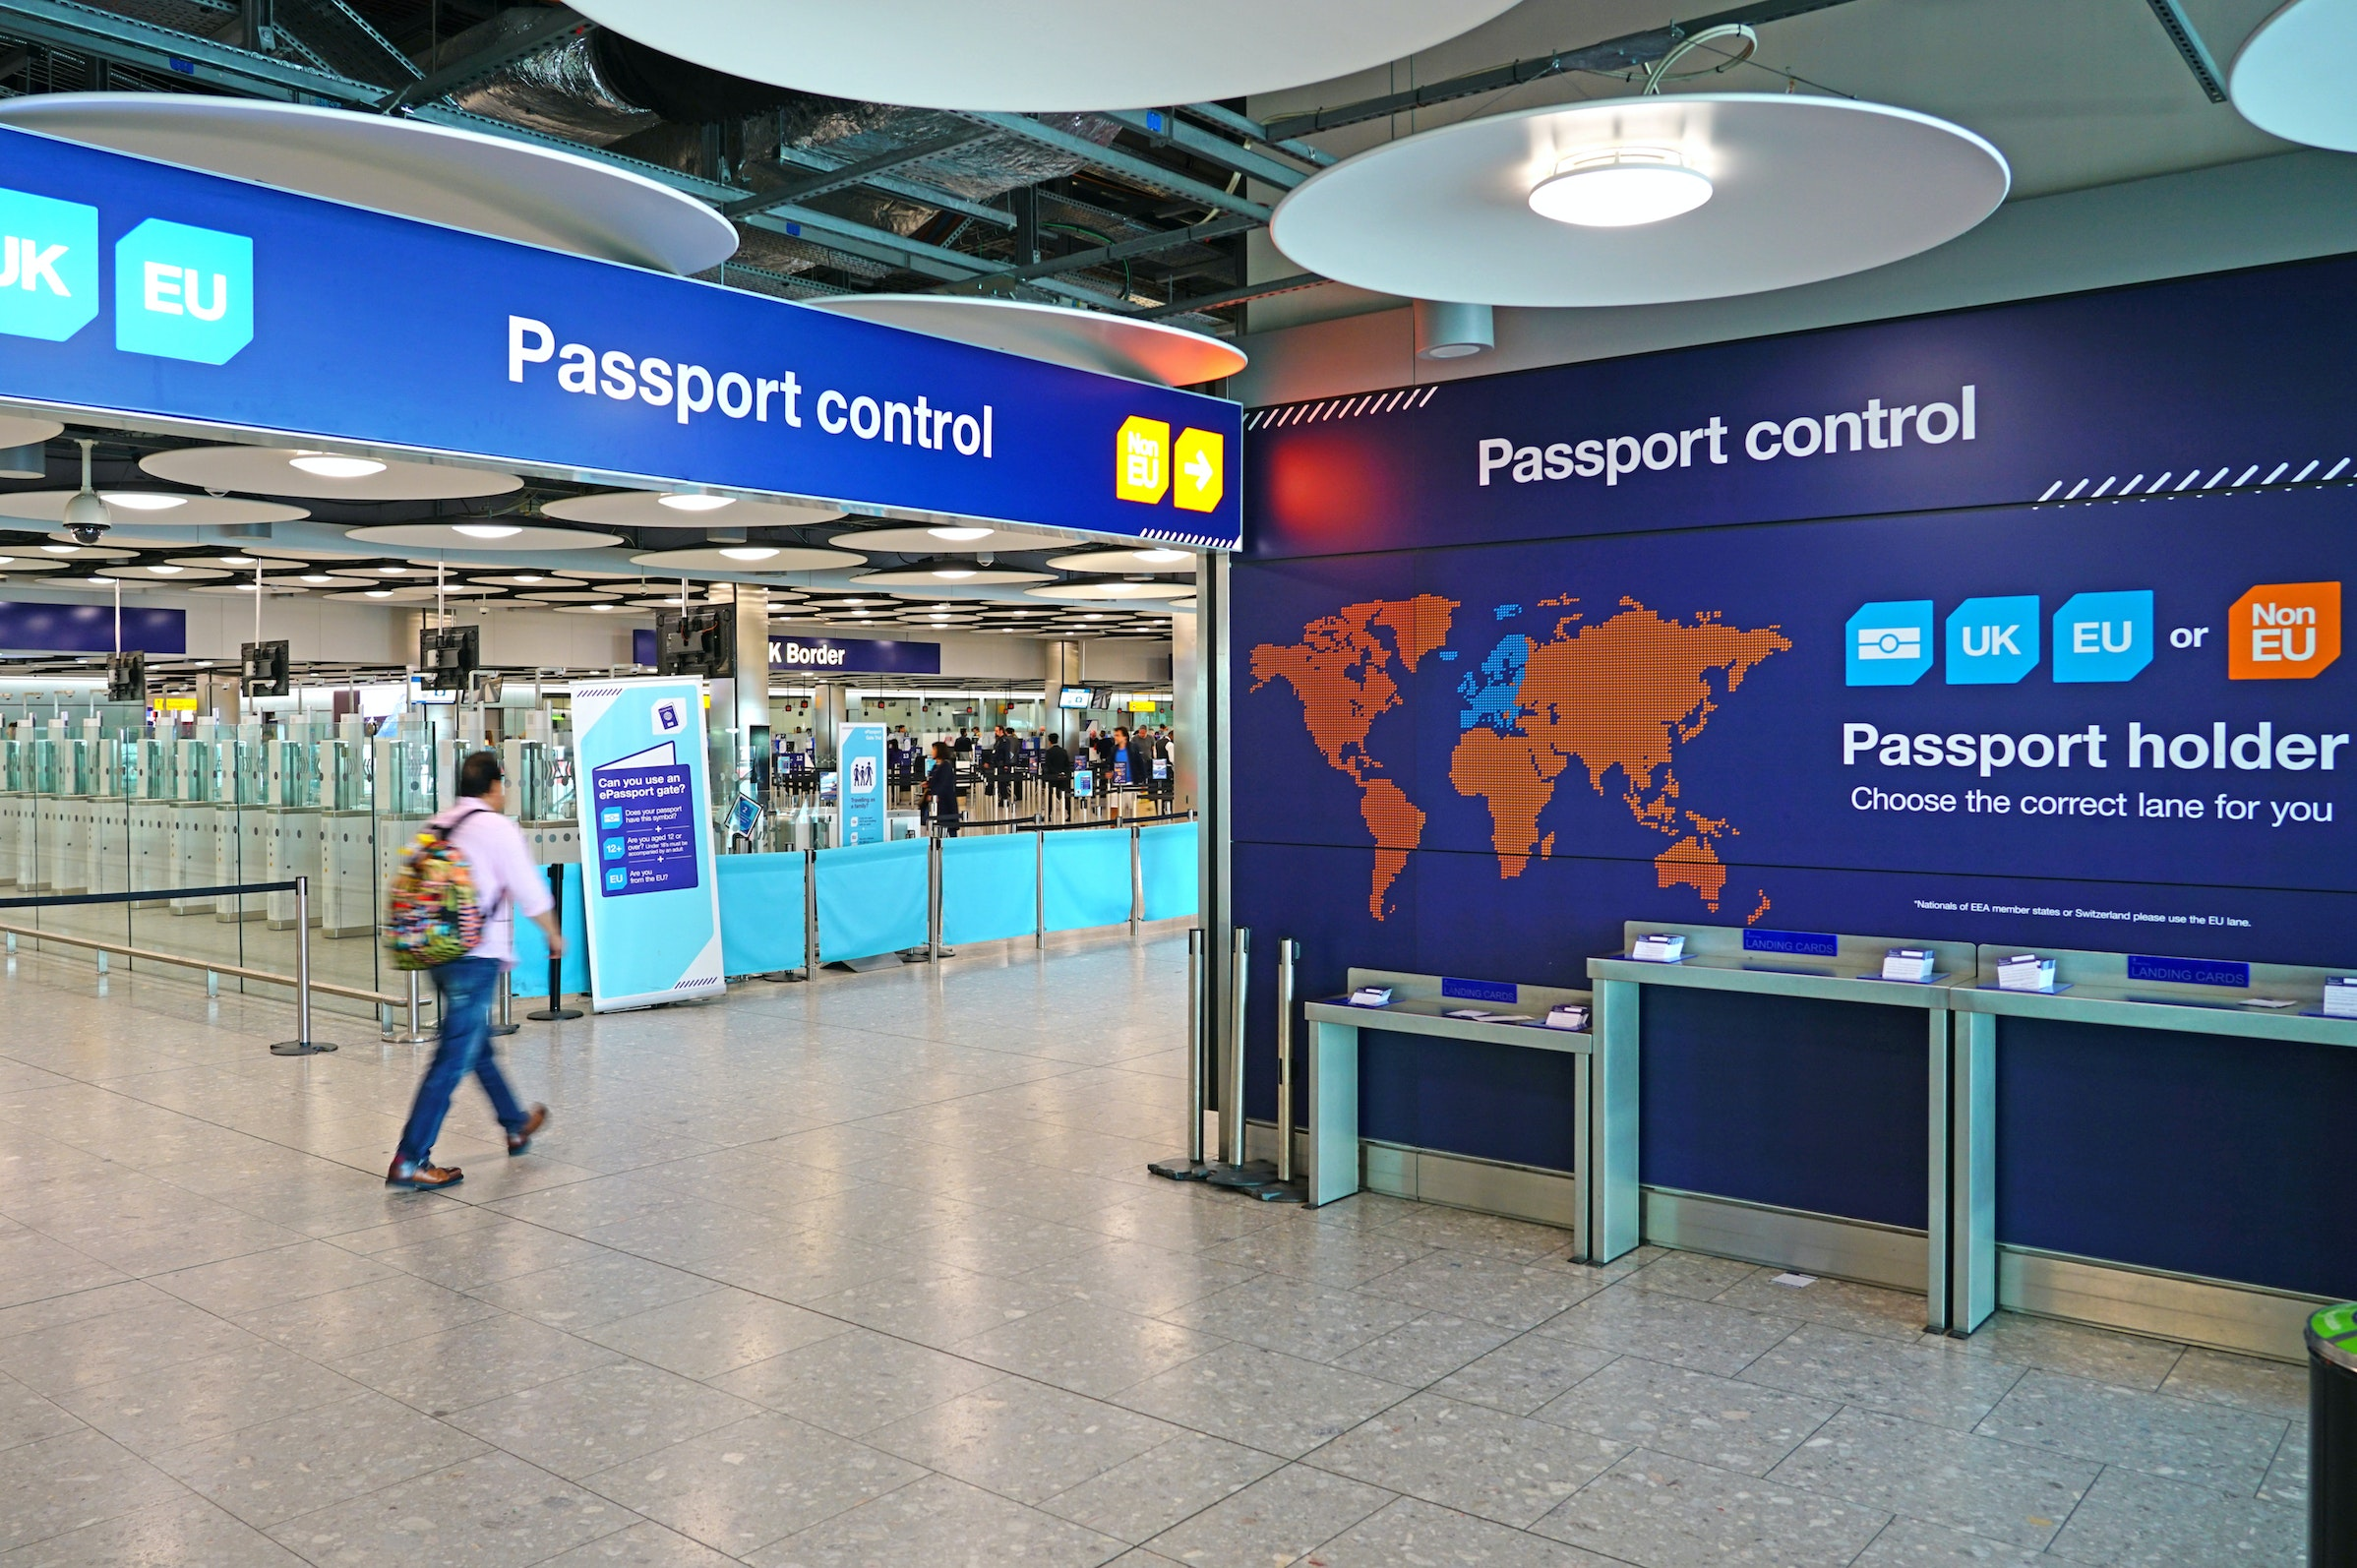 U.S. Travelers Can Now Use ePassport Lines at U.K. Airports